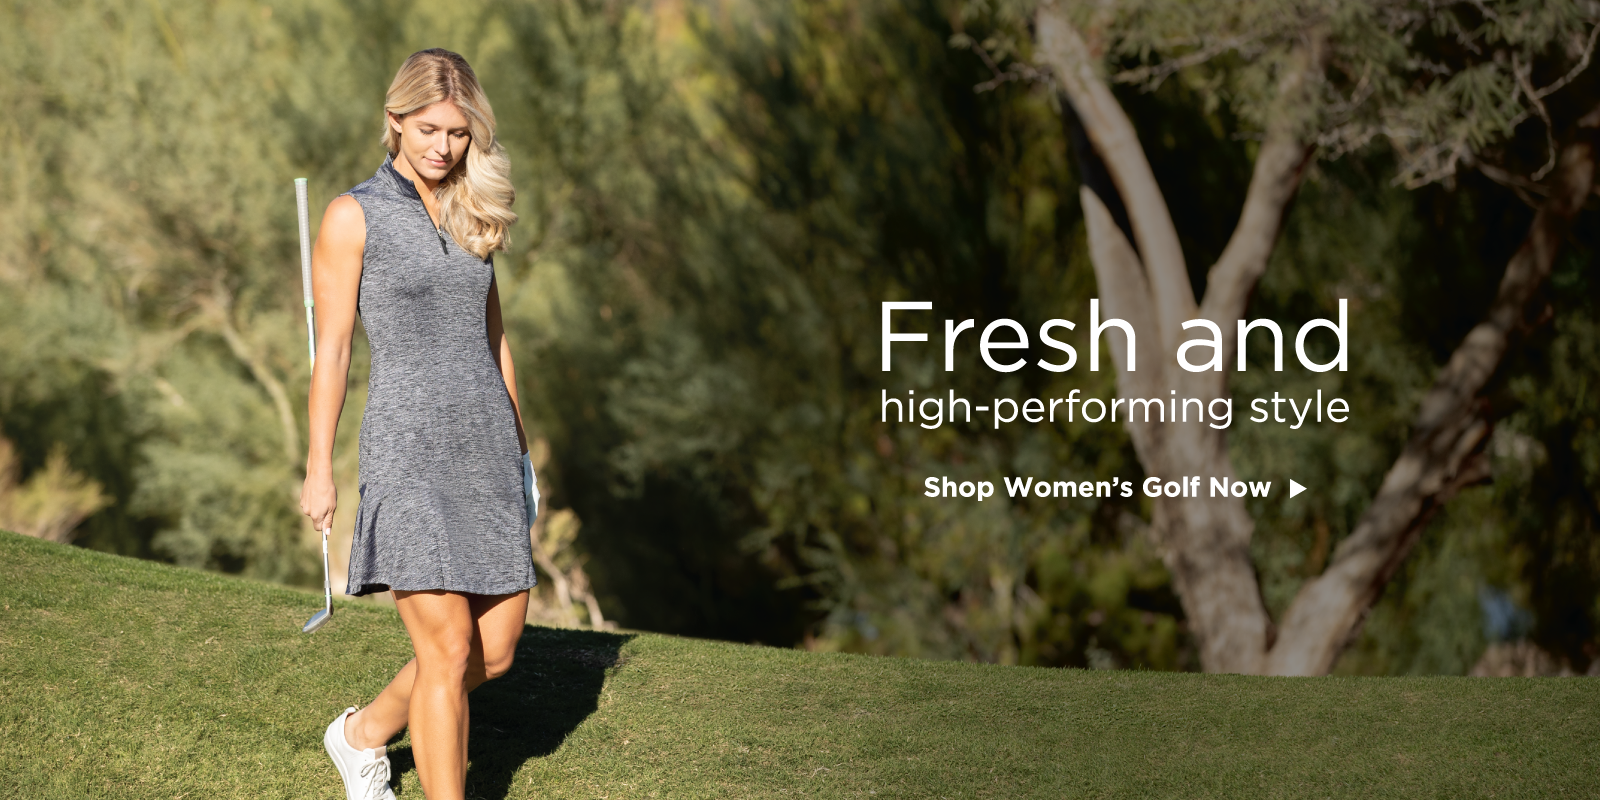 Fresh and high-performing style Shop Women's Golf Now